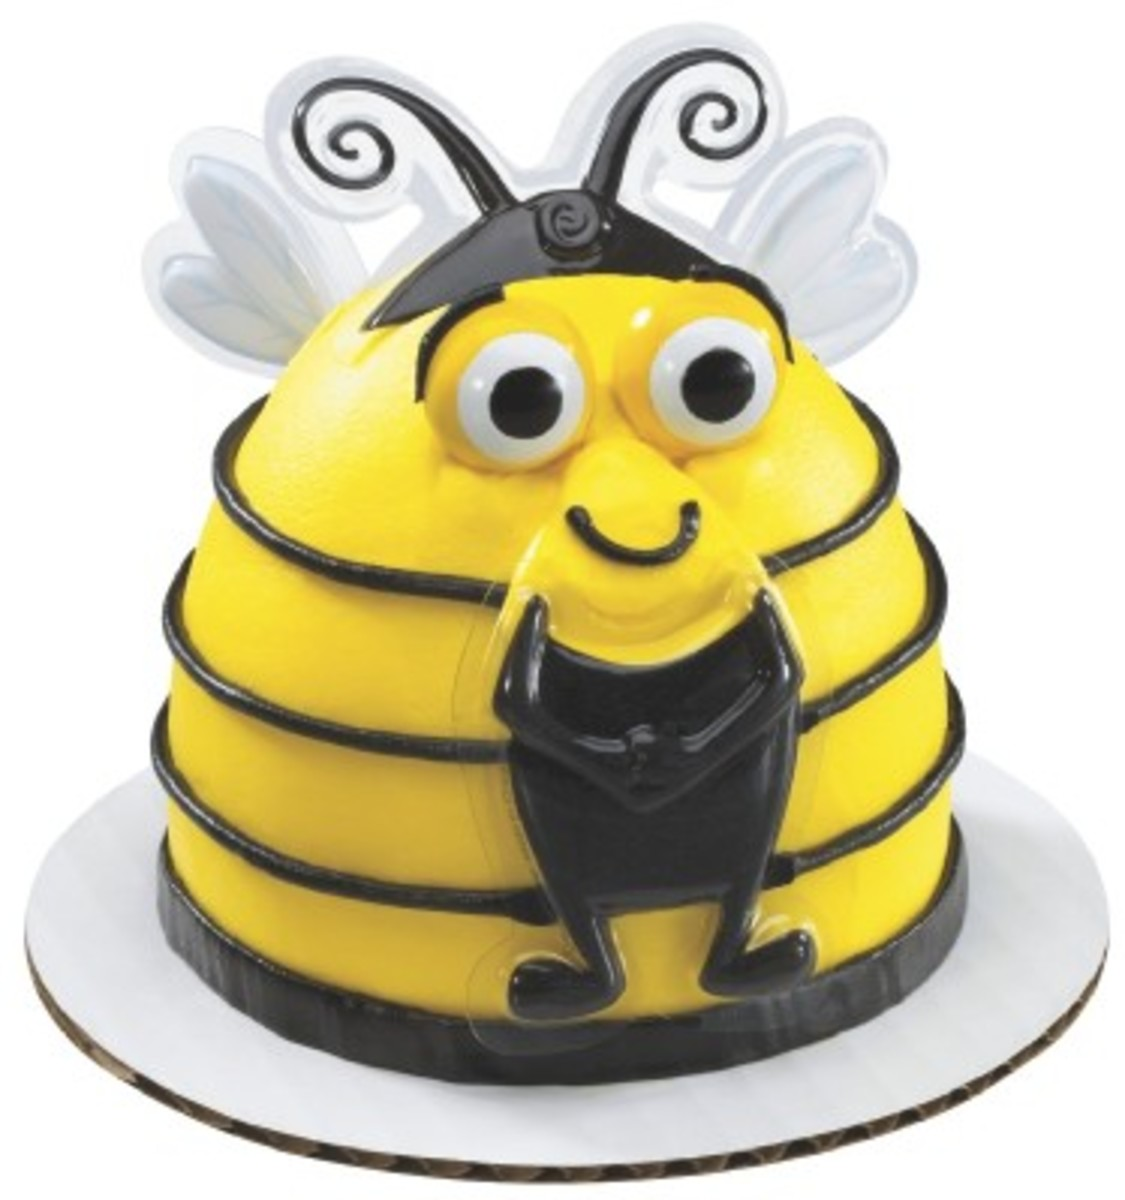 Bumble bee Birthday Cakes, Cupcakes and Cookies